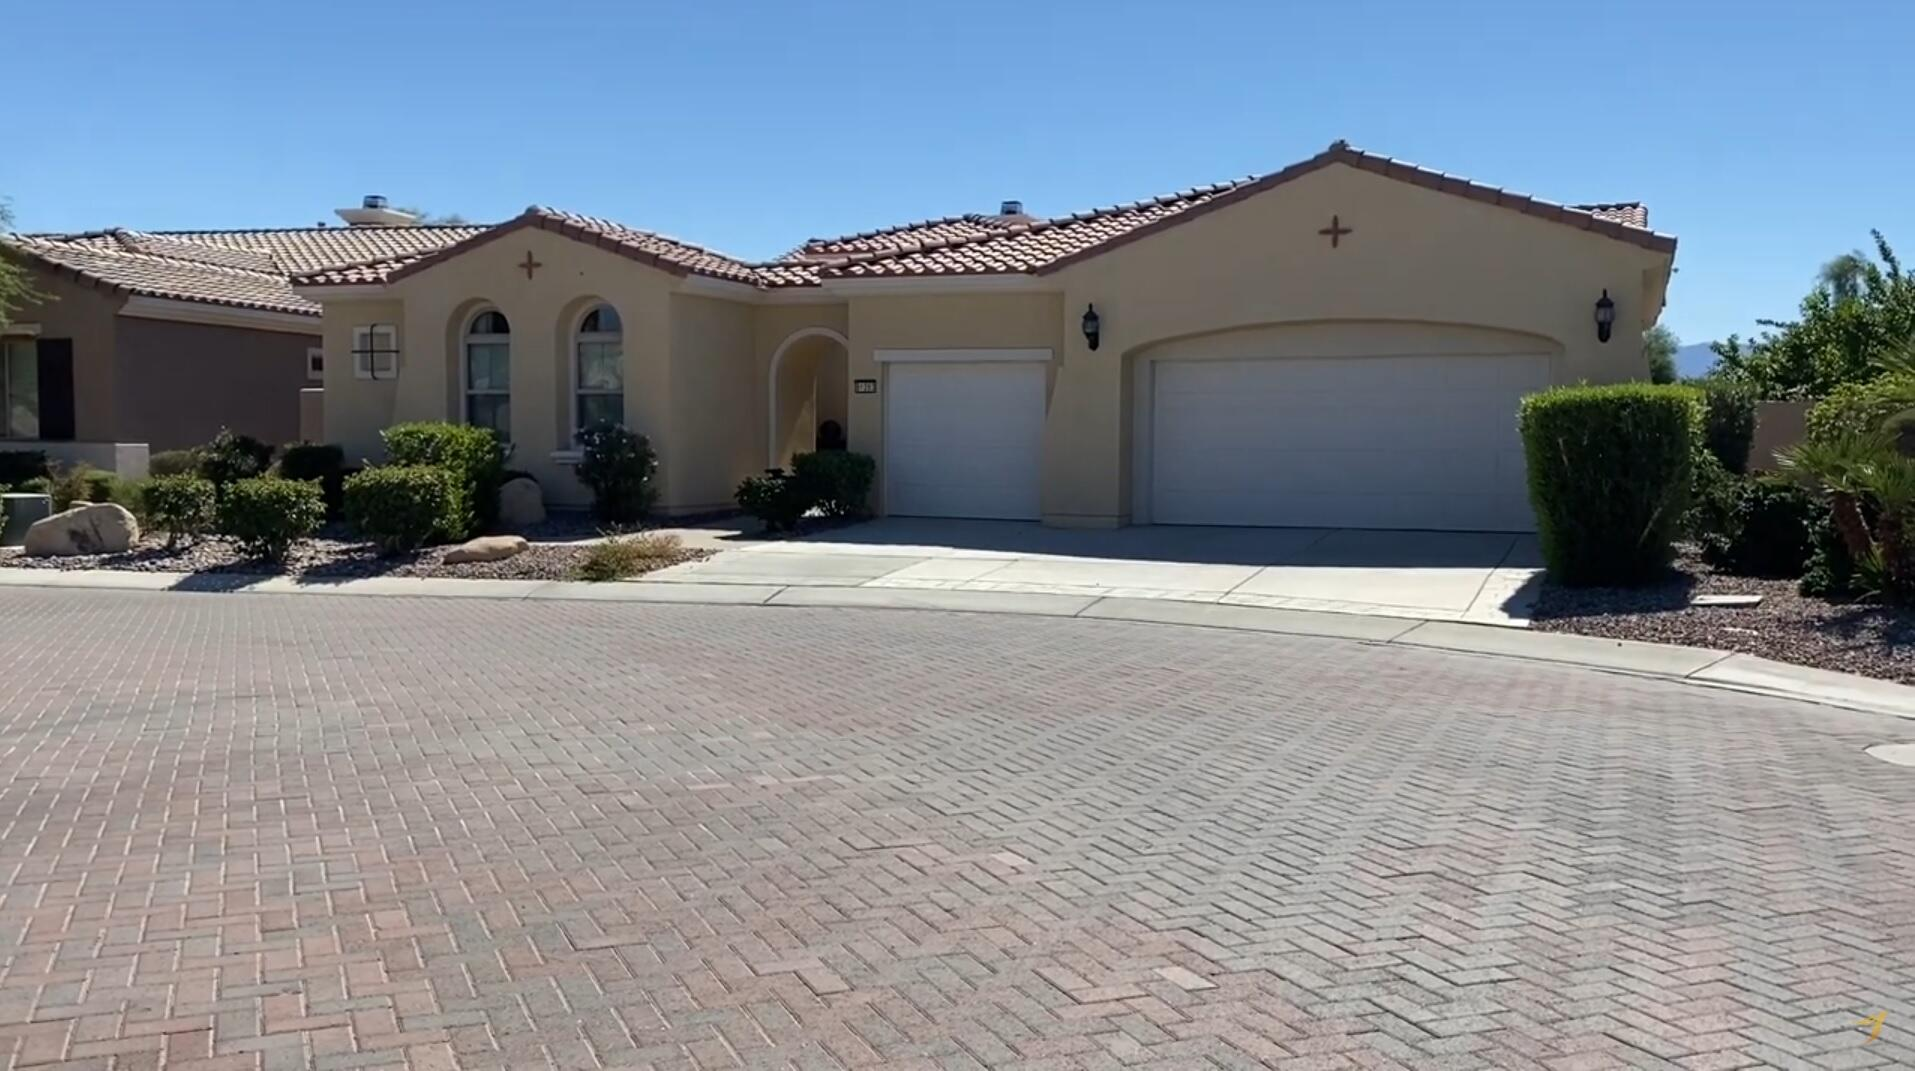 This popular 3 bed 3.5 bath approx 2,966 sq ft, plus den is in a highly desired location. Upgrades include raised panel cabinets throughout the home, stainless steel appliances, extended tile flooring, washer/dryer, casita, and courtyard. The Shadow Hills Golf Course meanders through the neighborhood and the 35,000 sq. ft. Montecito Clubhouse boasts a state of the art fitness center. Indoor and outdoor pools, tennis and more! The backyard has a beautiful view & heated spa to enjoy. This home features a south facing view of the championship golf course with lake and Santa Rosa Mountain views.